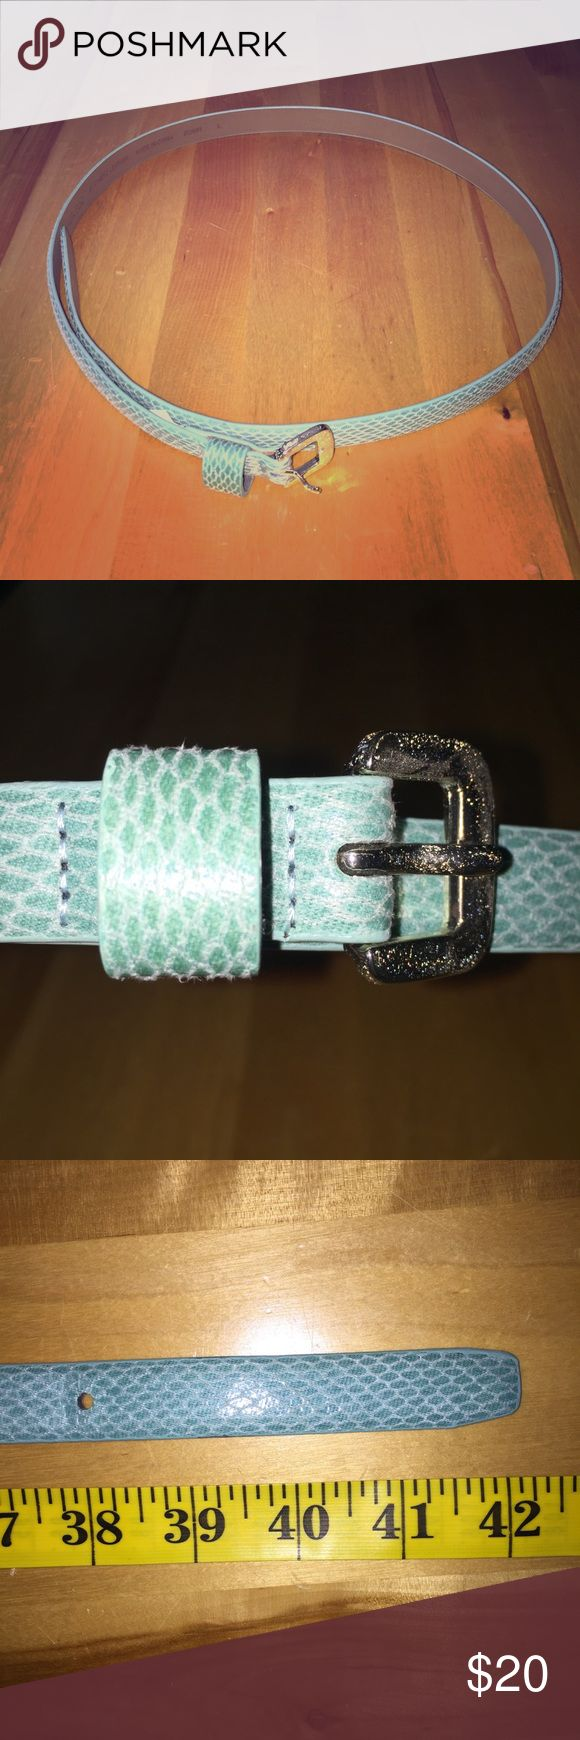 Banana Republic Mint Faux Leather Belt, Size L This mint / turquoise Faux leather skinny belt can pair with jeans or a dress for a quick splash of color! Feeling that LBD but want some quick outfit TLC? This piece is to the rescue! 🍀 Banana Republic Accessories Belts